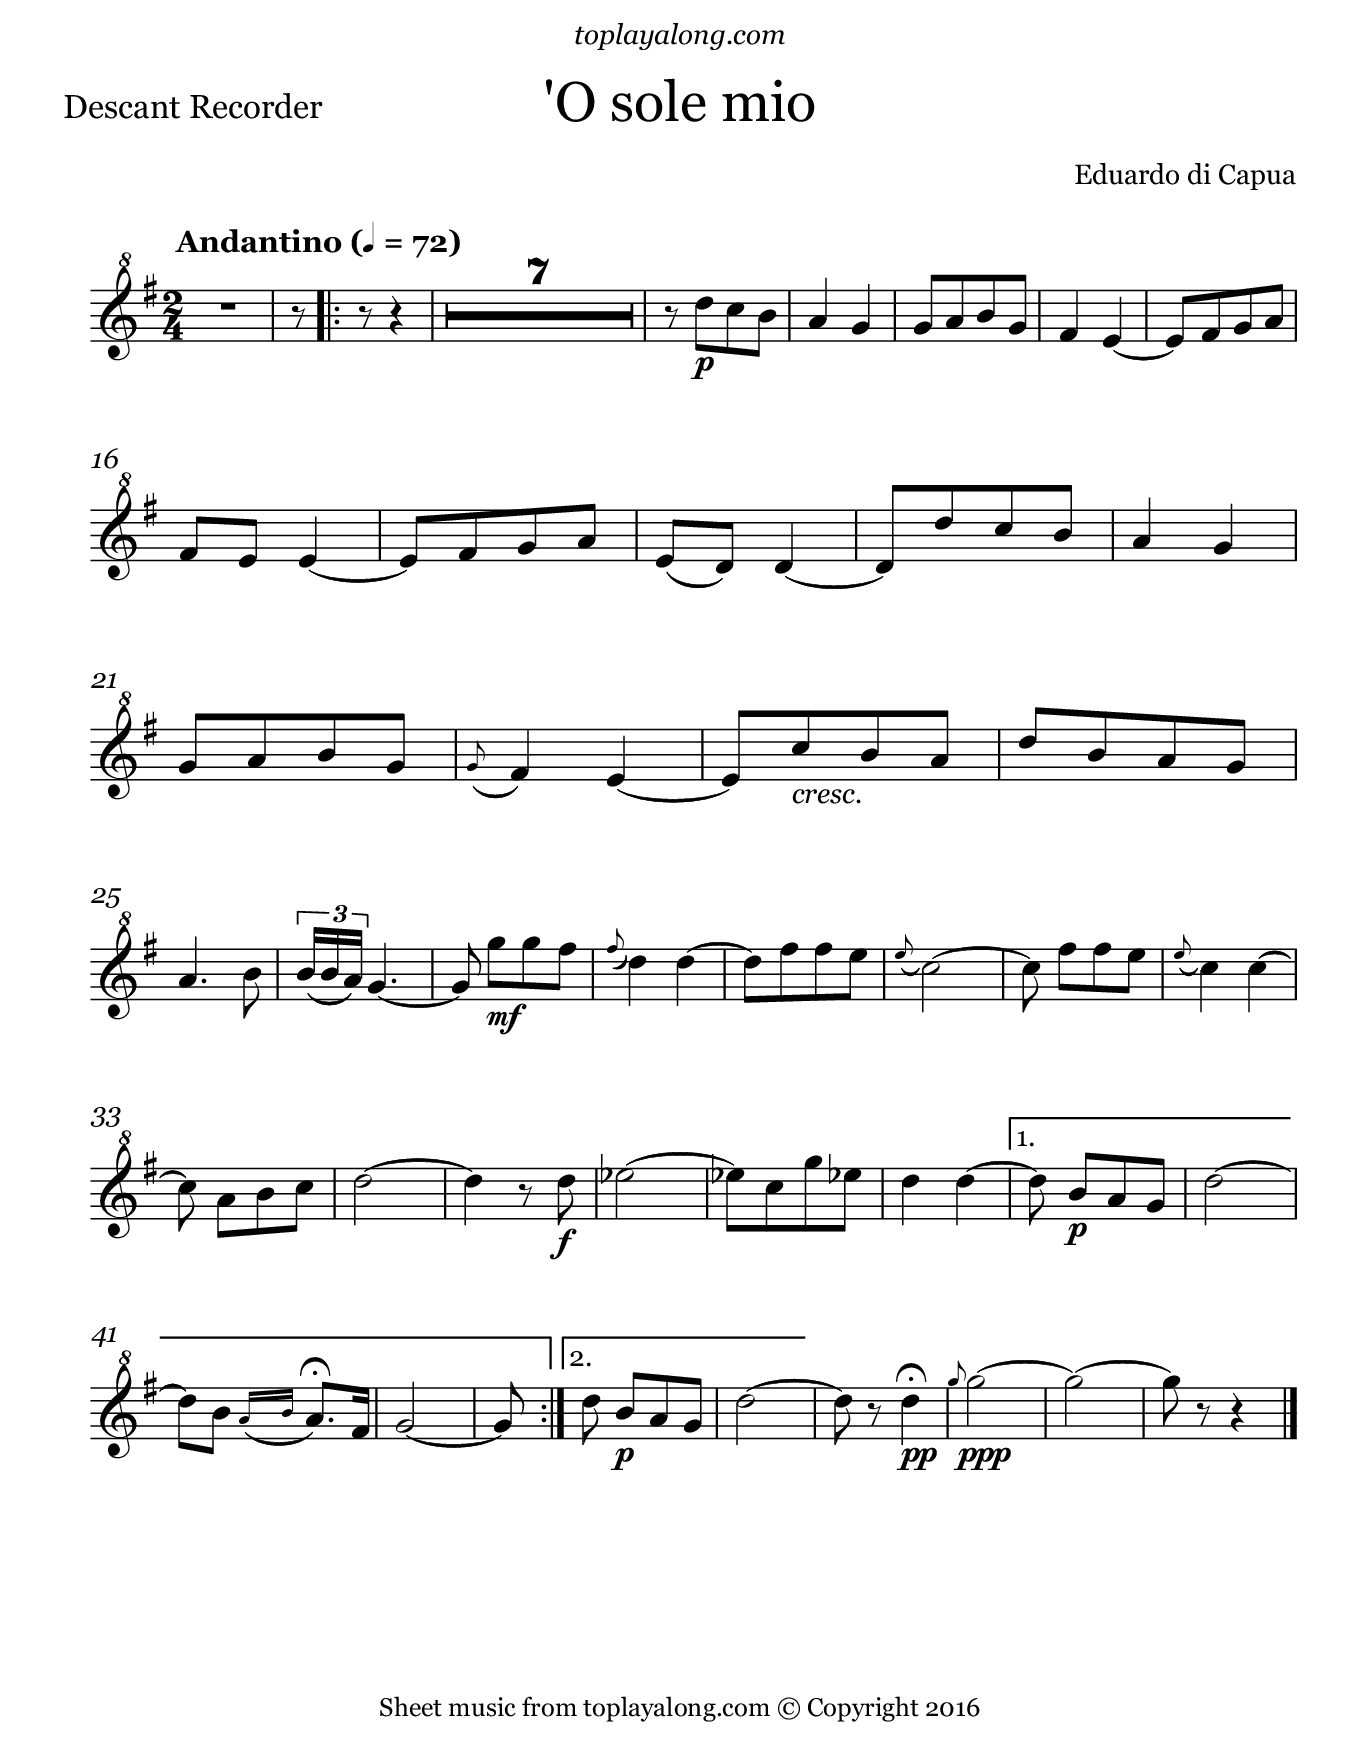 'O sole mio by Capua. Sheet music for Recorder, page 1.